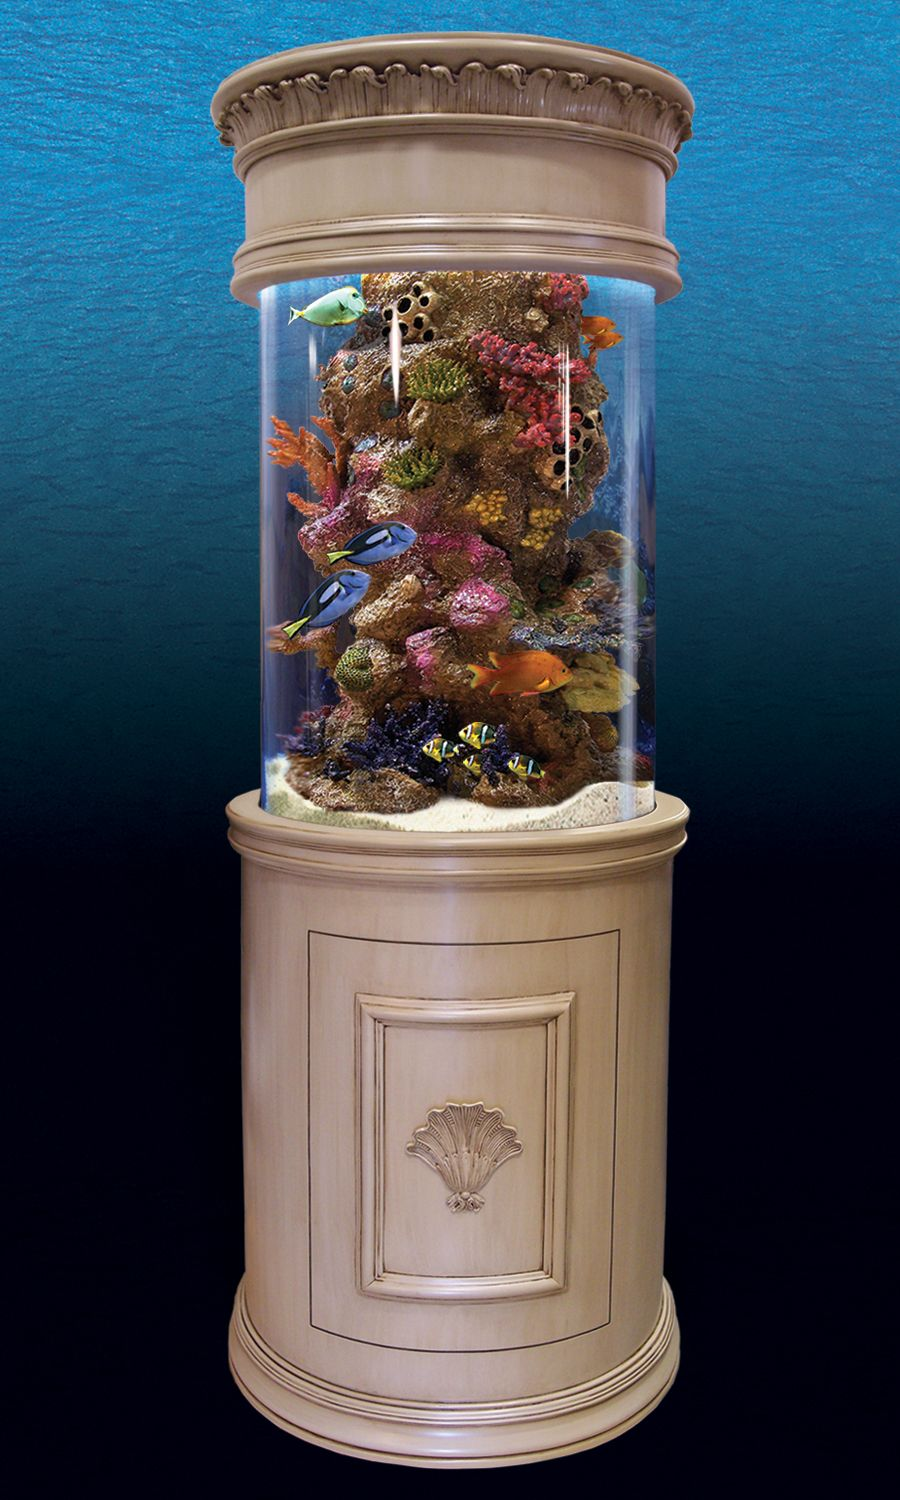 Aquarium Im Schlafzimmer Love This Fish Tank Aquariums Tanks Fish Pinterest